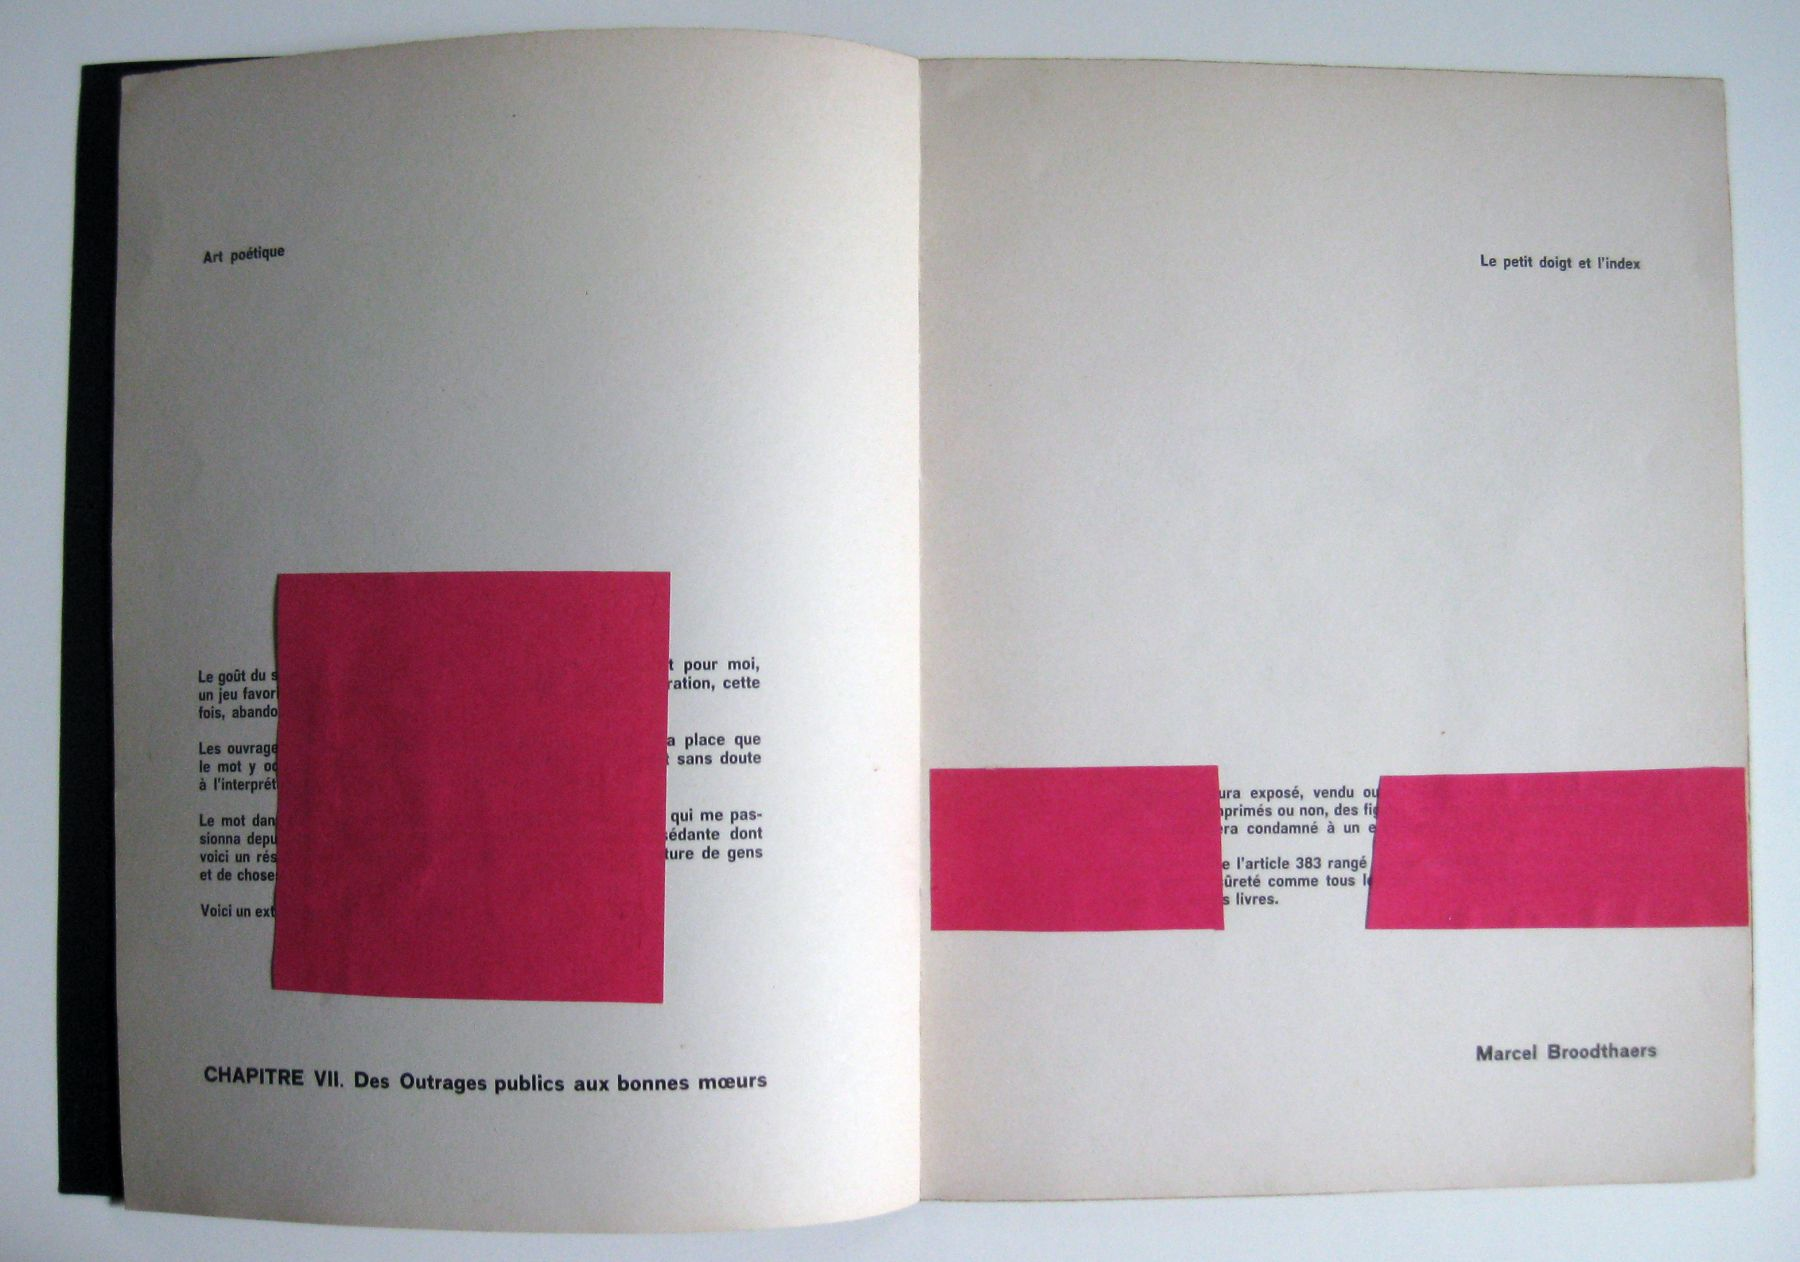 """MARCEL BROODTHAERS. """"Pense Bete"""". 1964. Image courtesy of Alden Projects™, New York."""